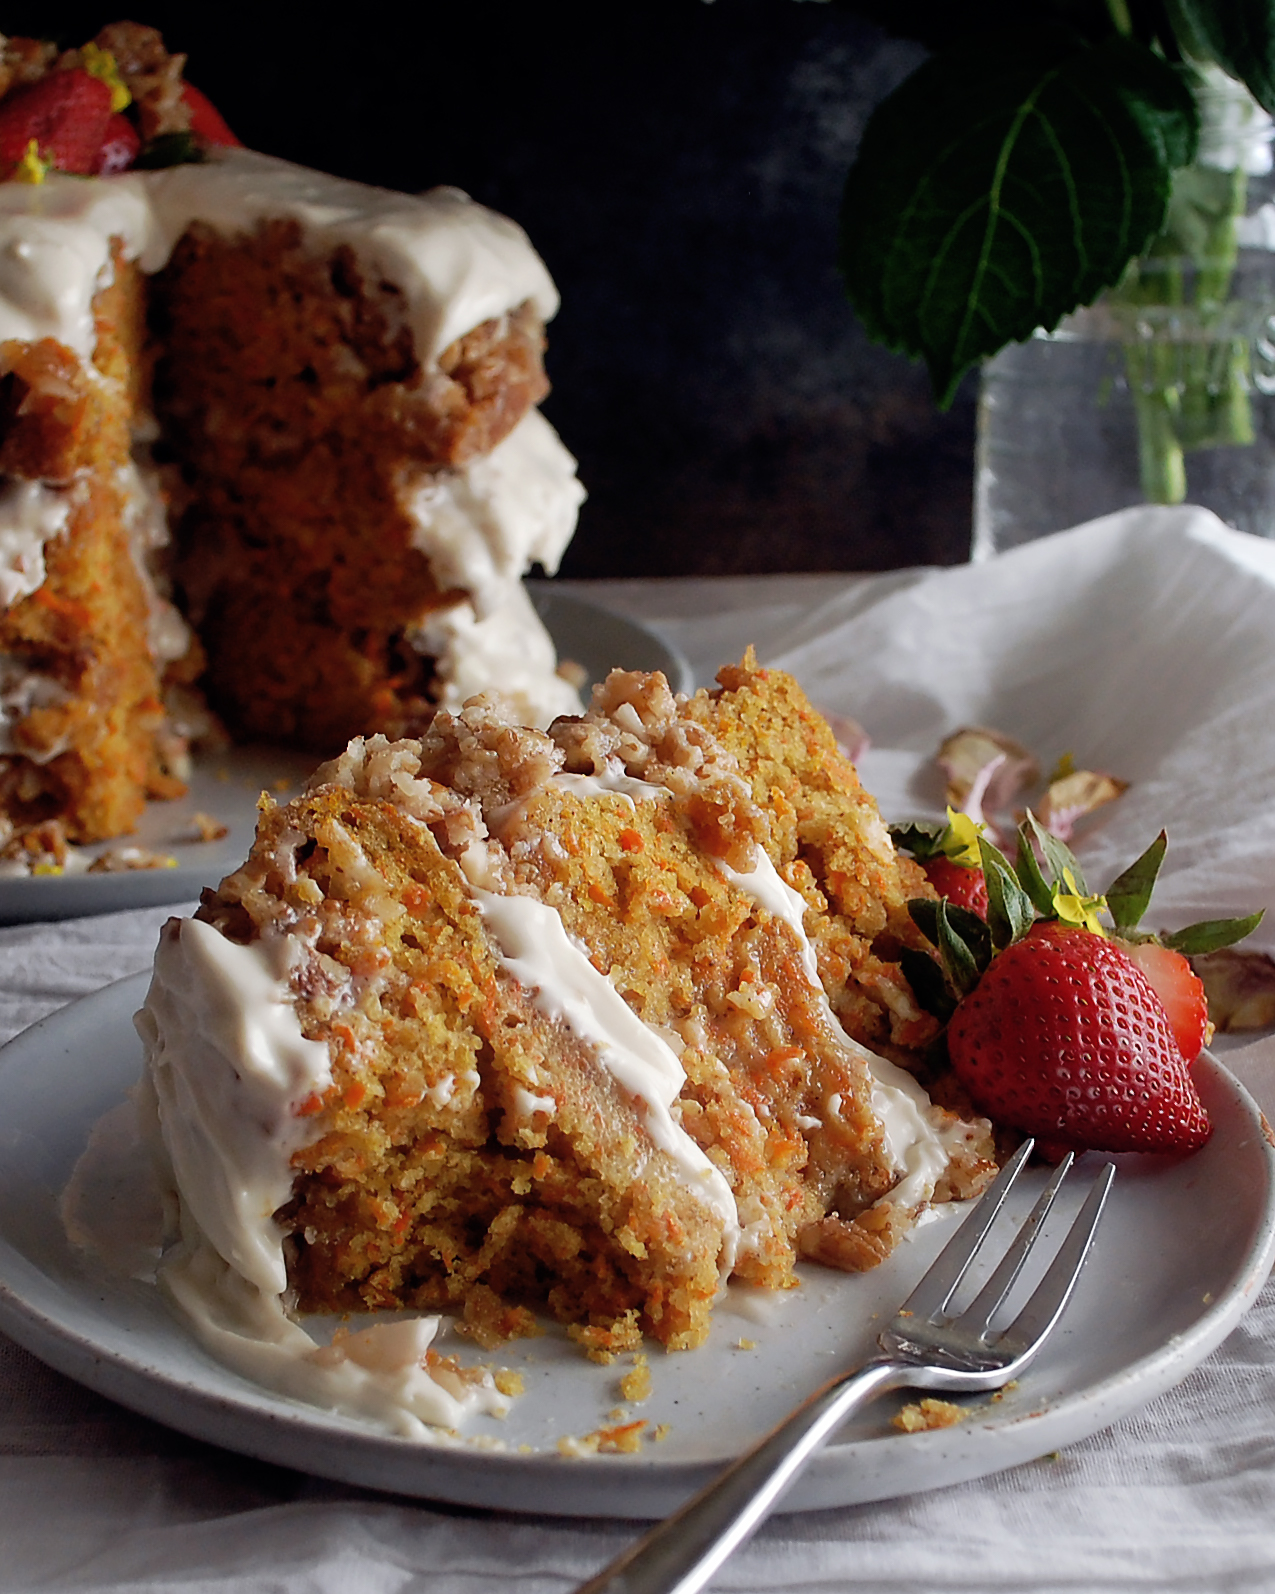 Coconut Cream Cheese Frosting For Carrot Cake